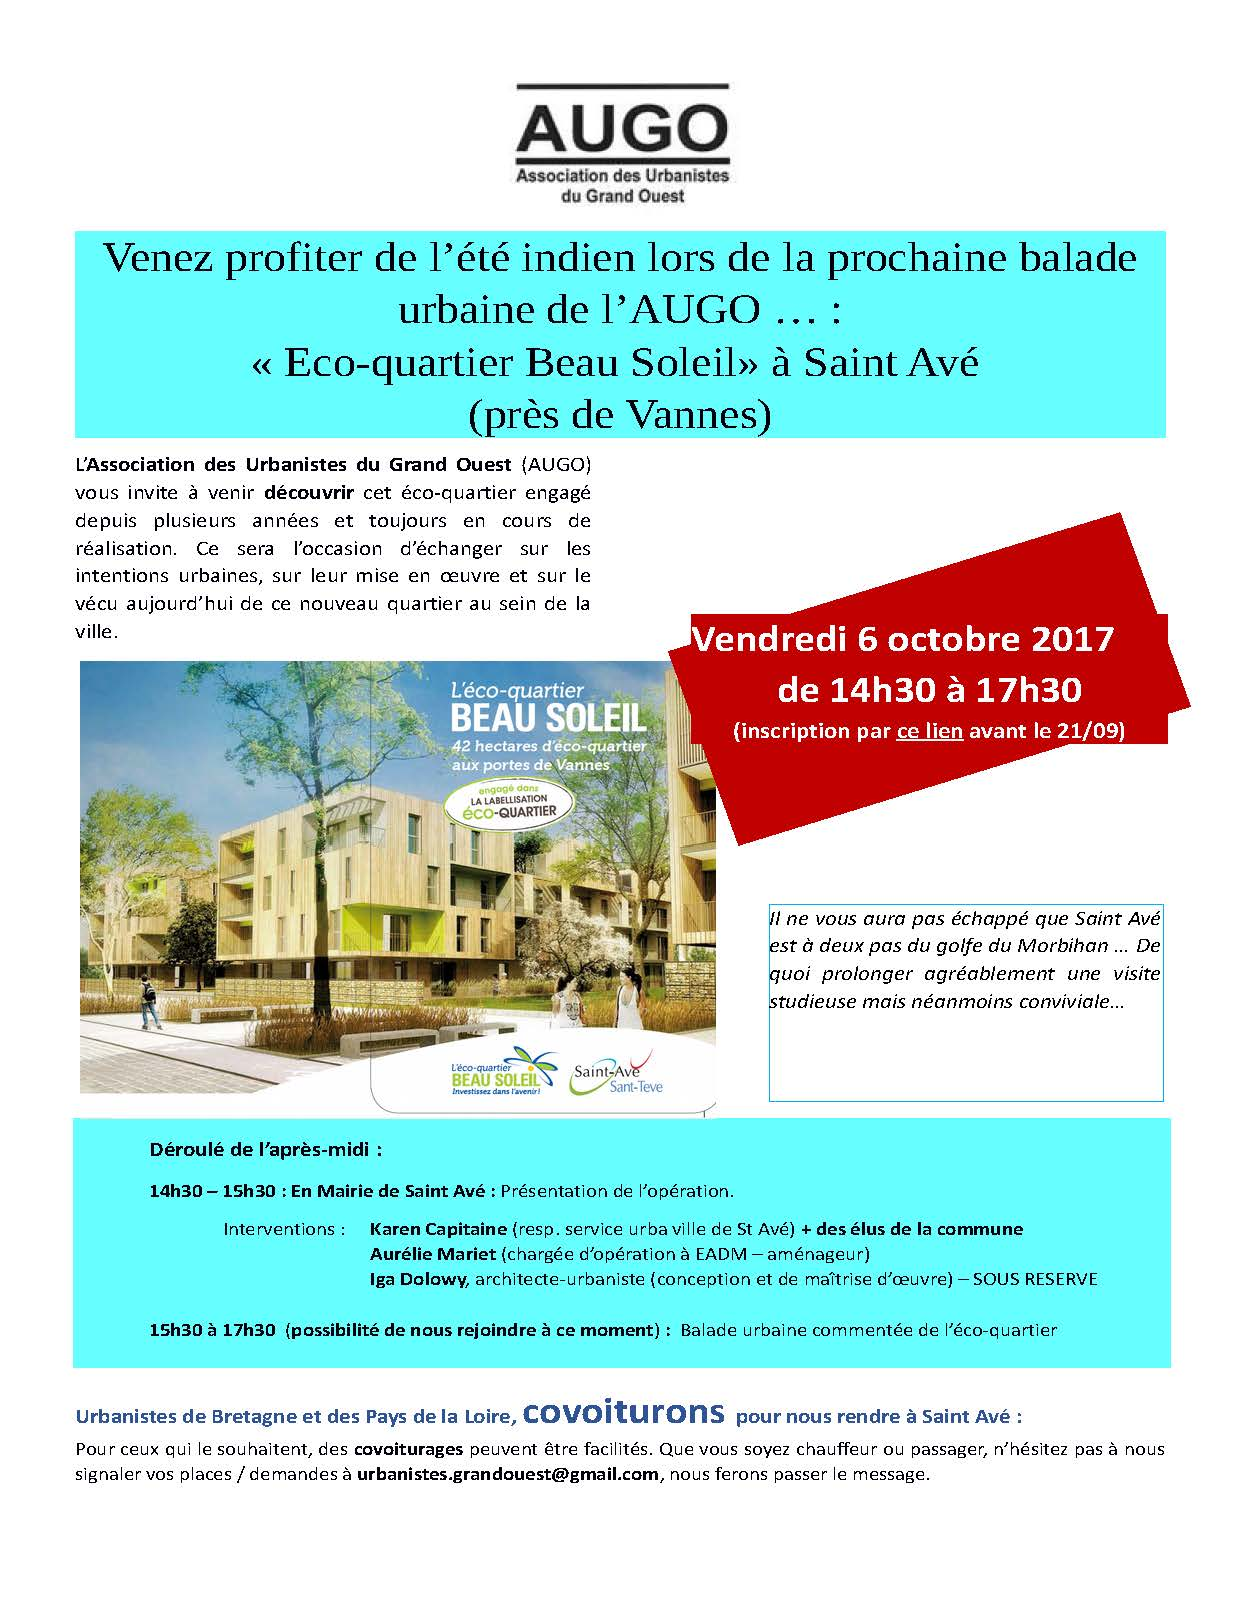 Invitation AUGO Saint Avé_06.10.2017